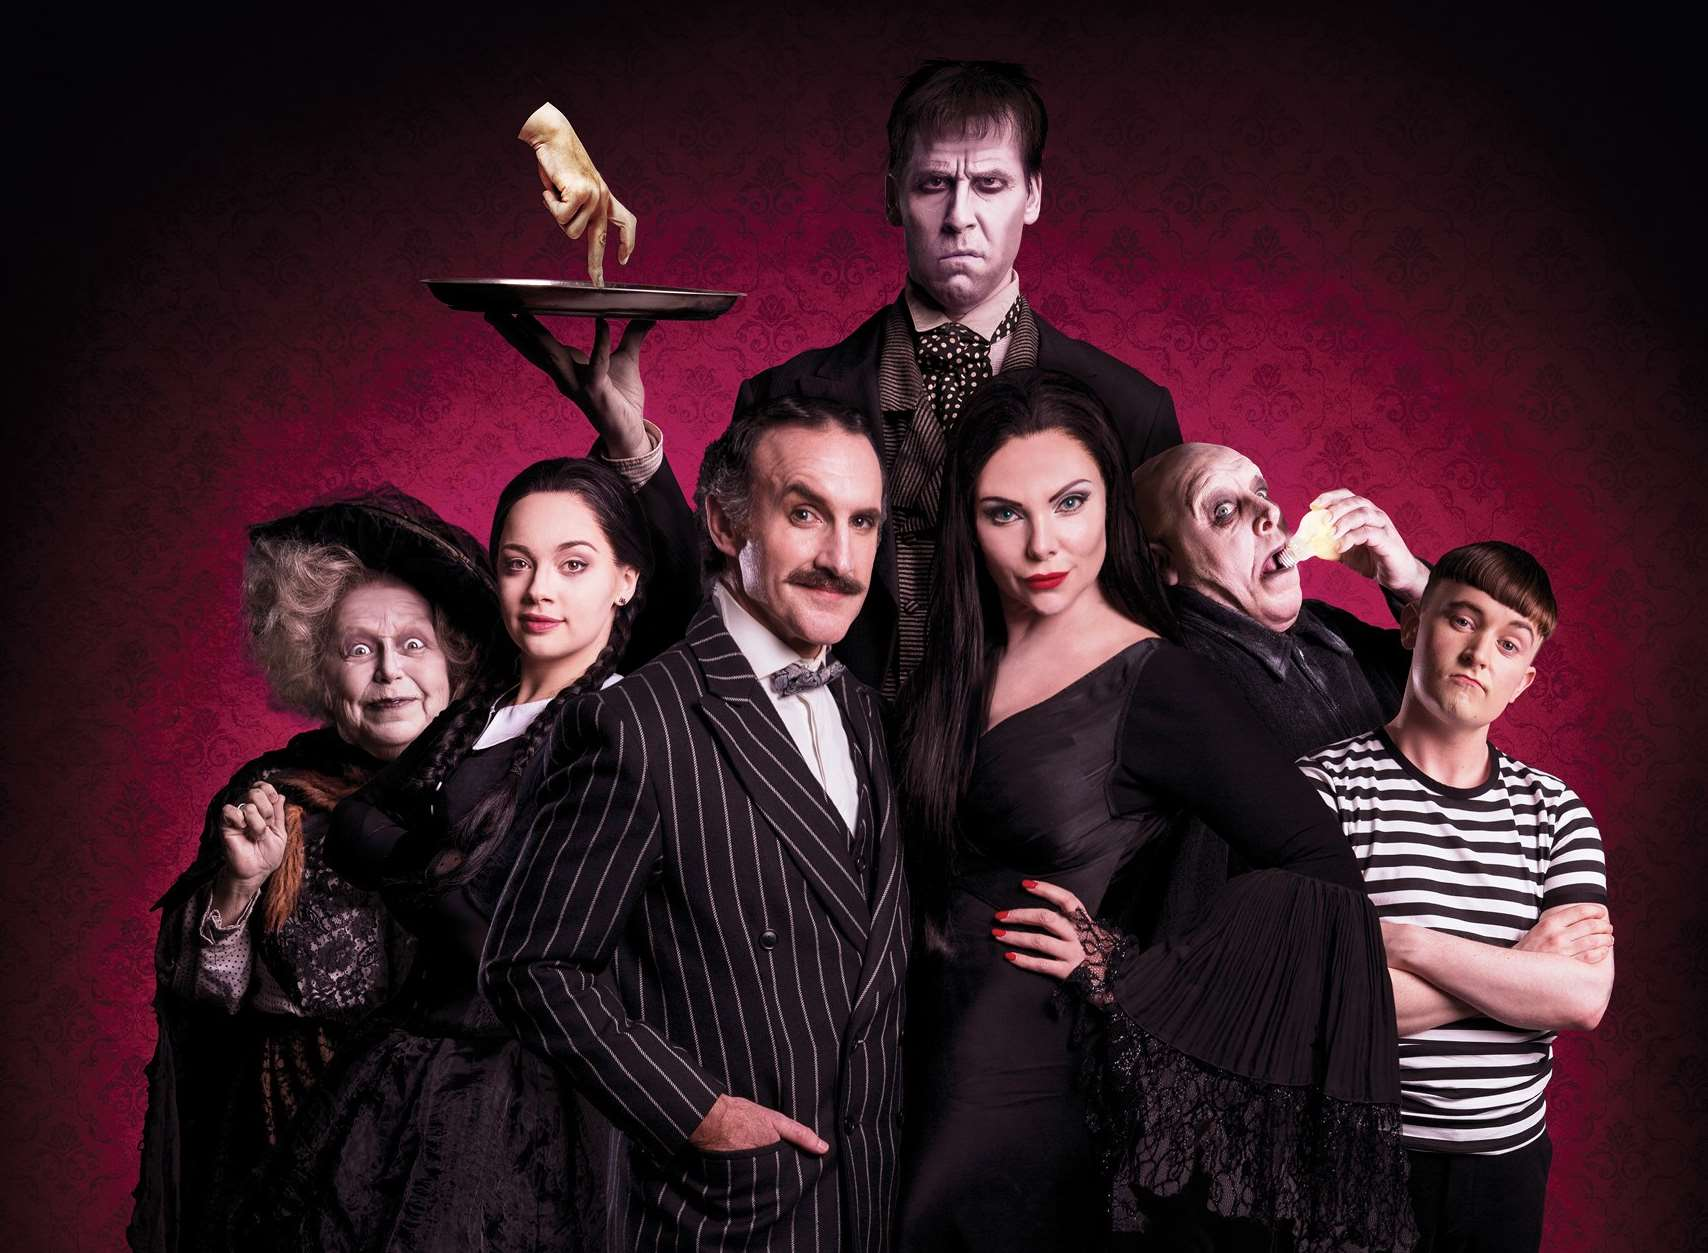 Valda Aviks, Carrie Hope Fletcher, Cameron Blakely, Dickon Gough, Samantha Womack, Les Dennis and Grant McIntyre in the Addams Family. Picture: Matt Martin